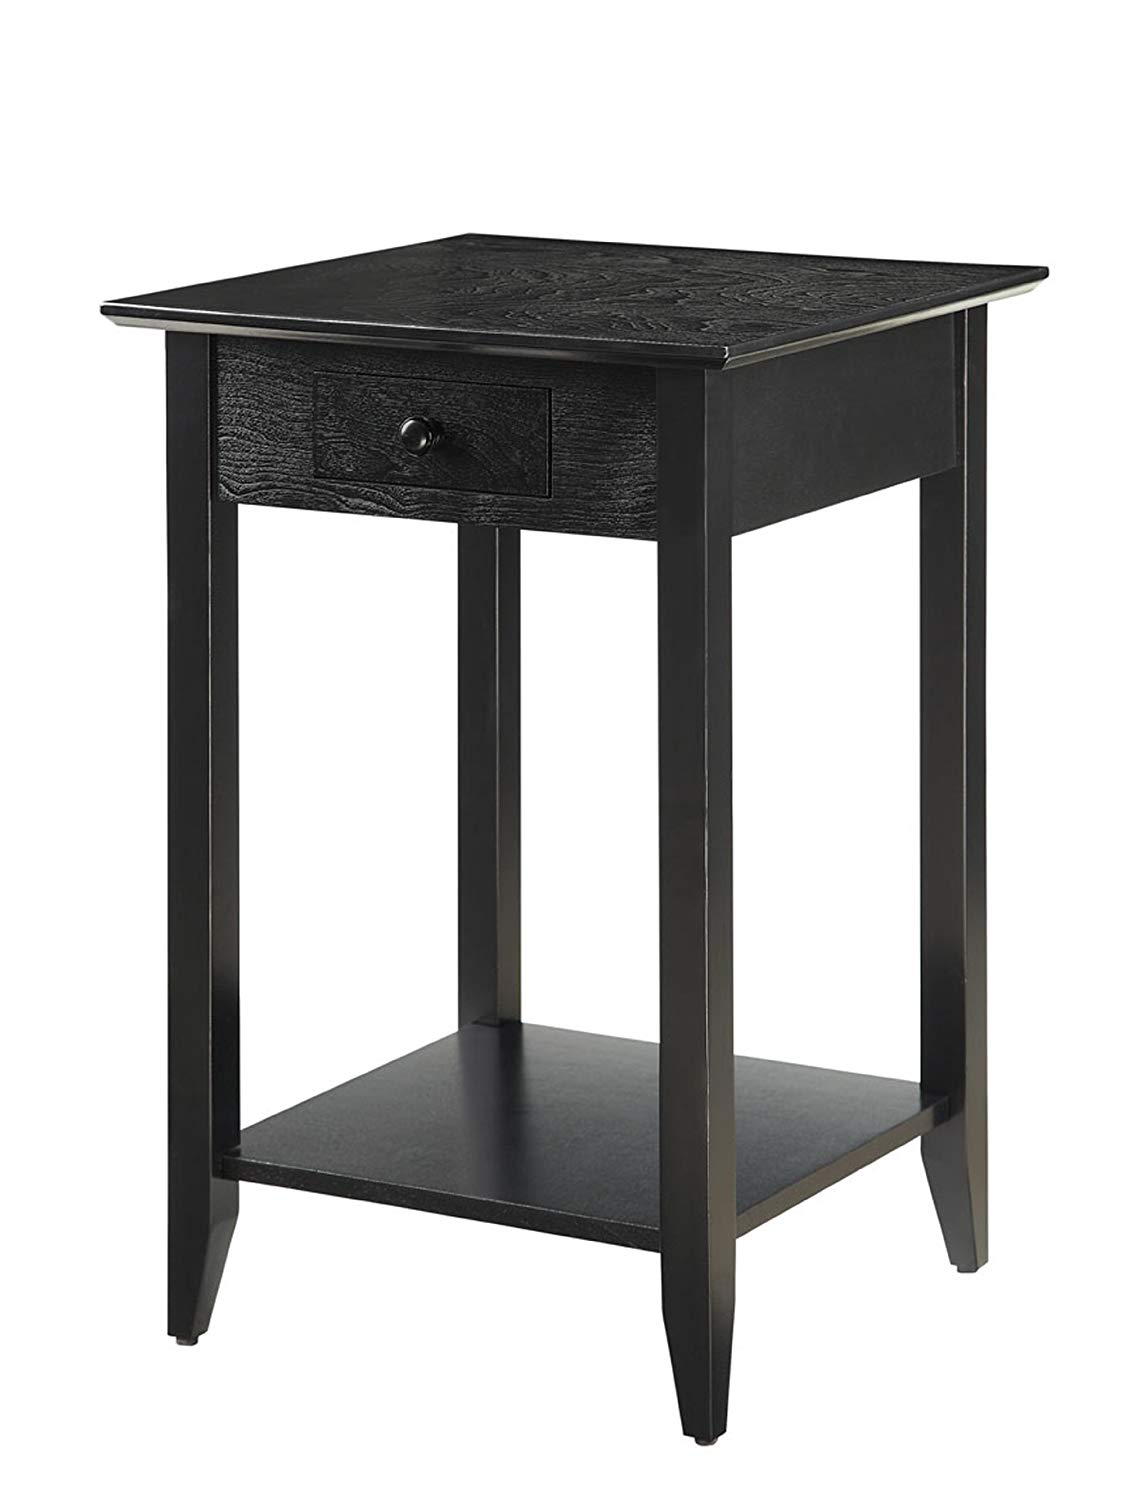 convenience concepts american heritage end table with storage accent black room essentials shelf and drawer kitchen dining half circle sofa furniture toronto outdoor chairs